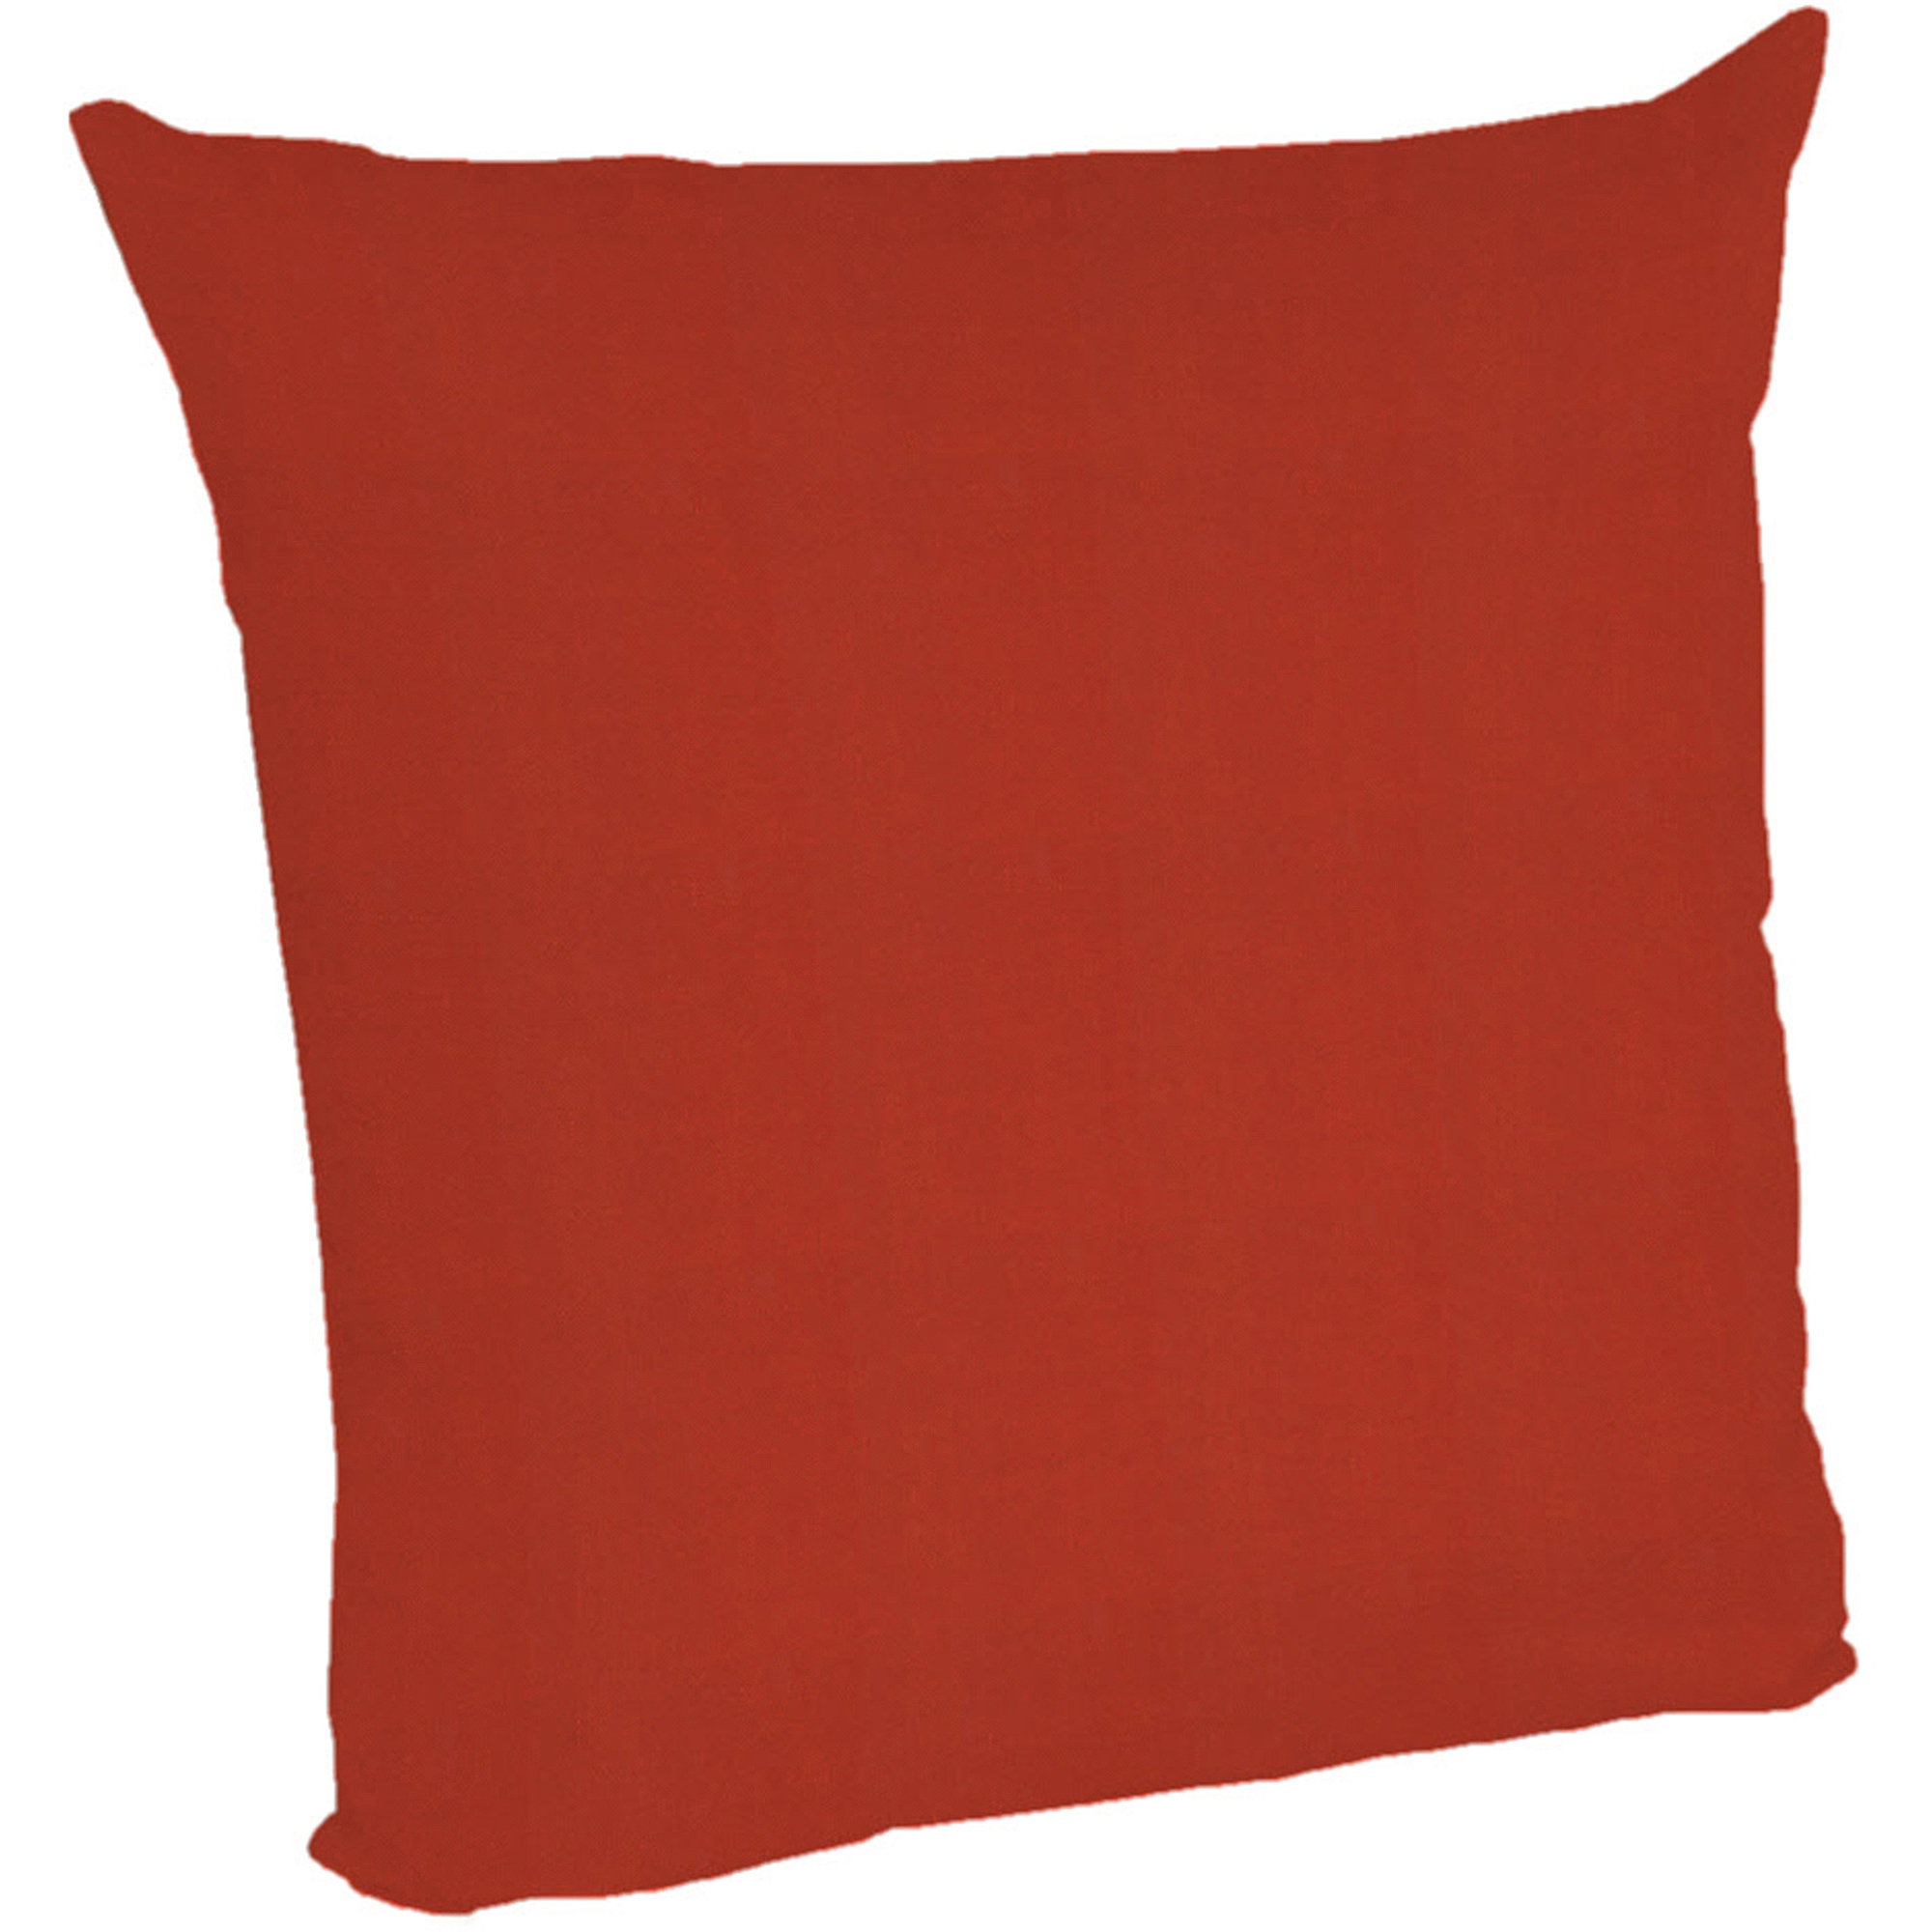 Arden Deep Seat Slipcover for Pillow Back Red Texture Cushion